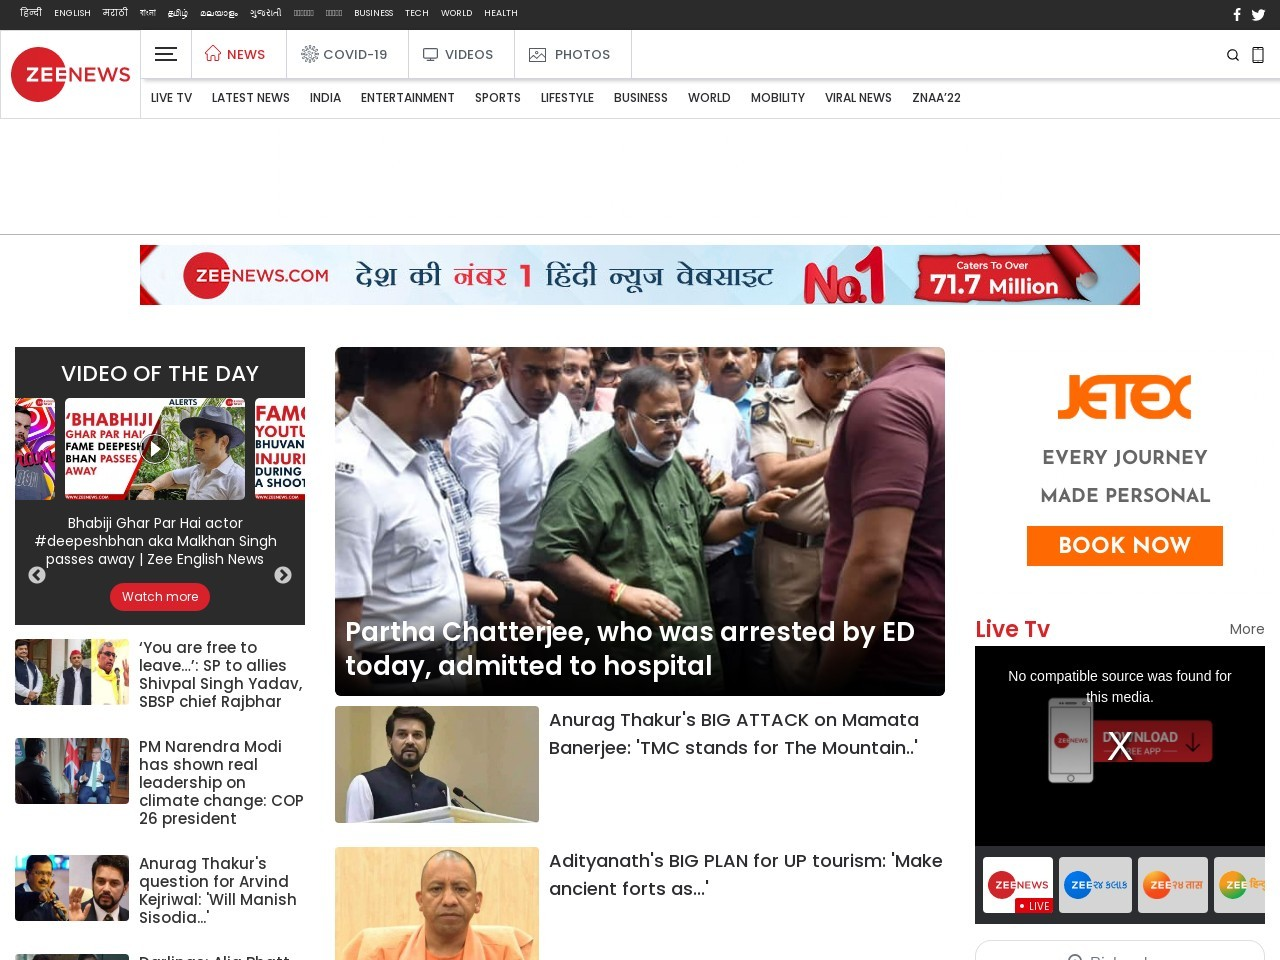 Suresh Raina gets the axe: India's limited-overs specialist fails to make BCCI grade